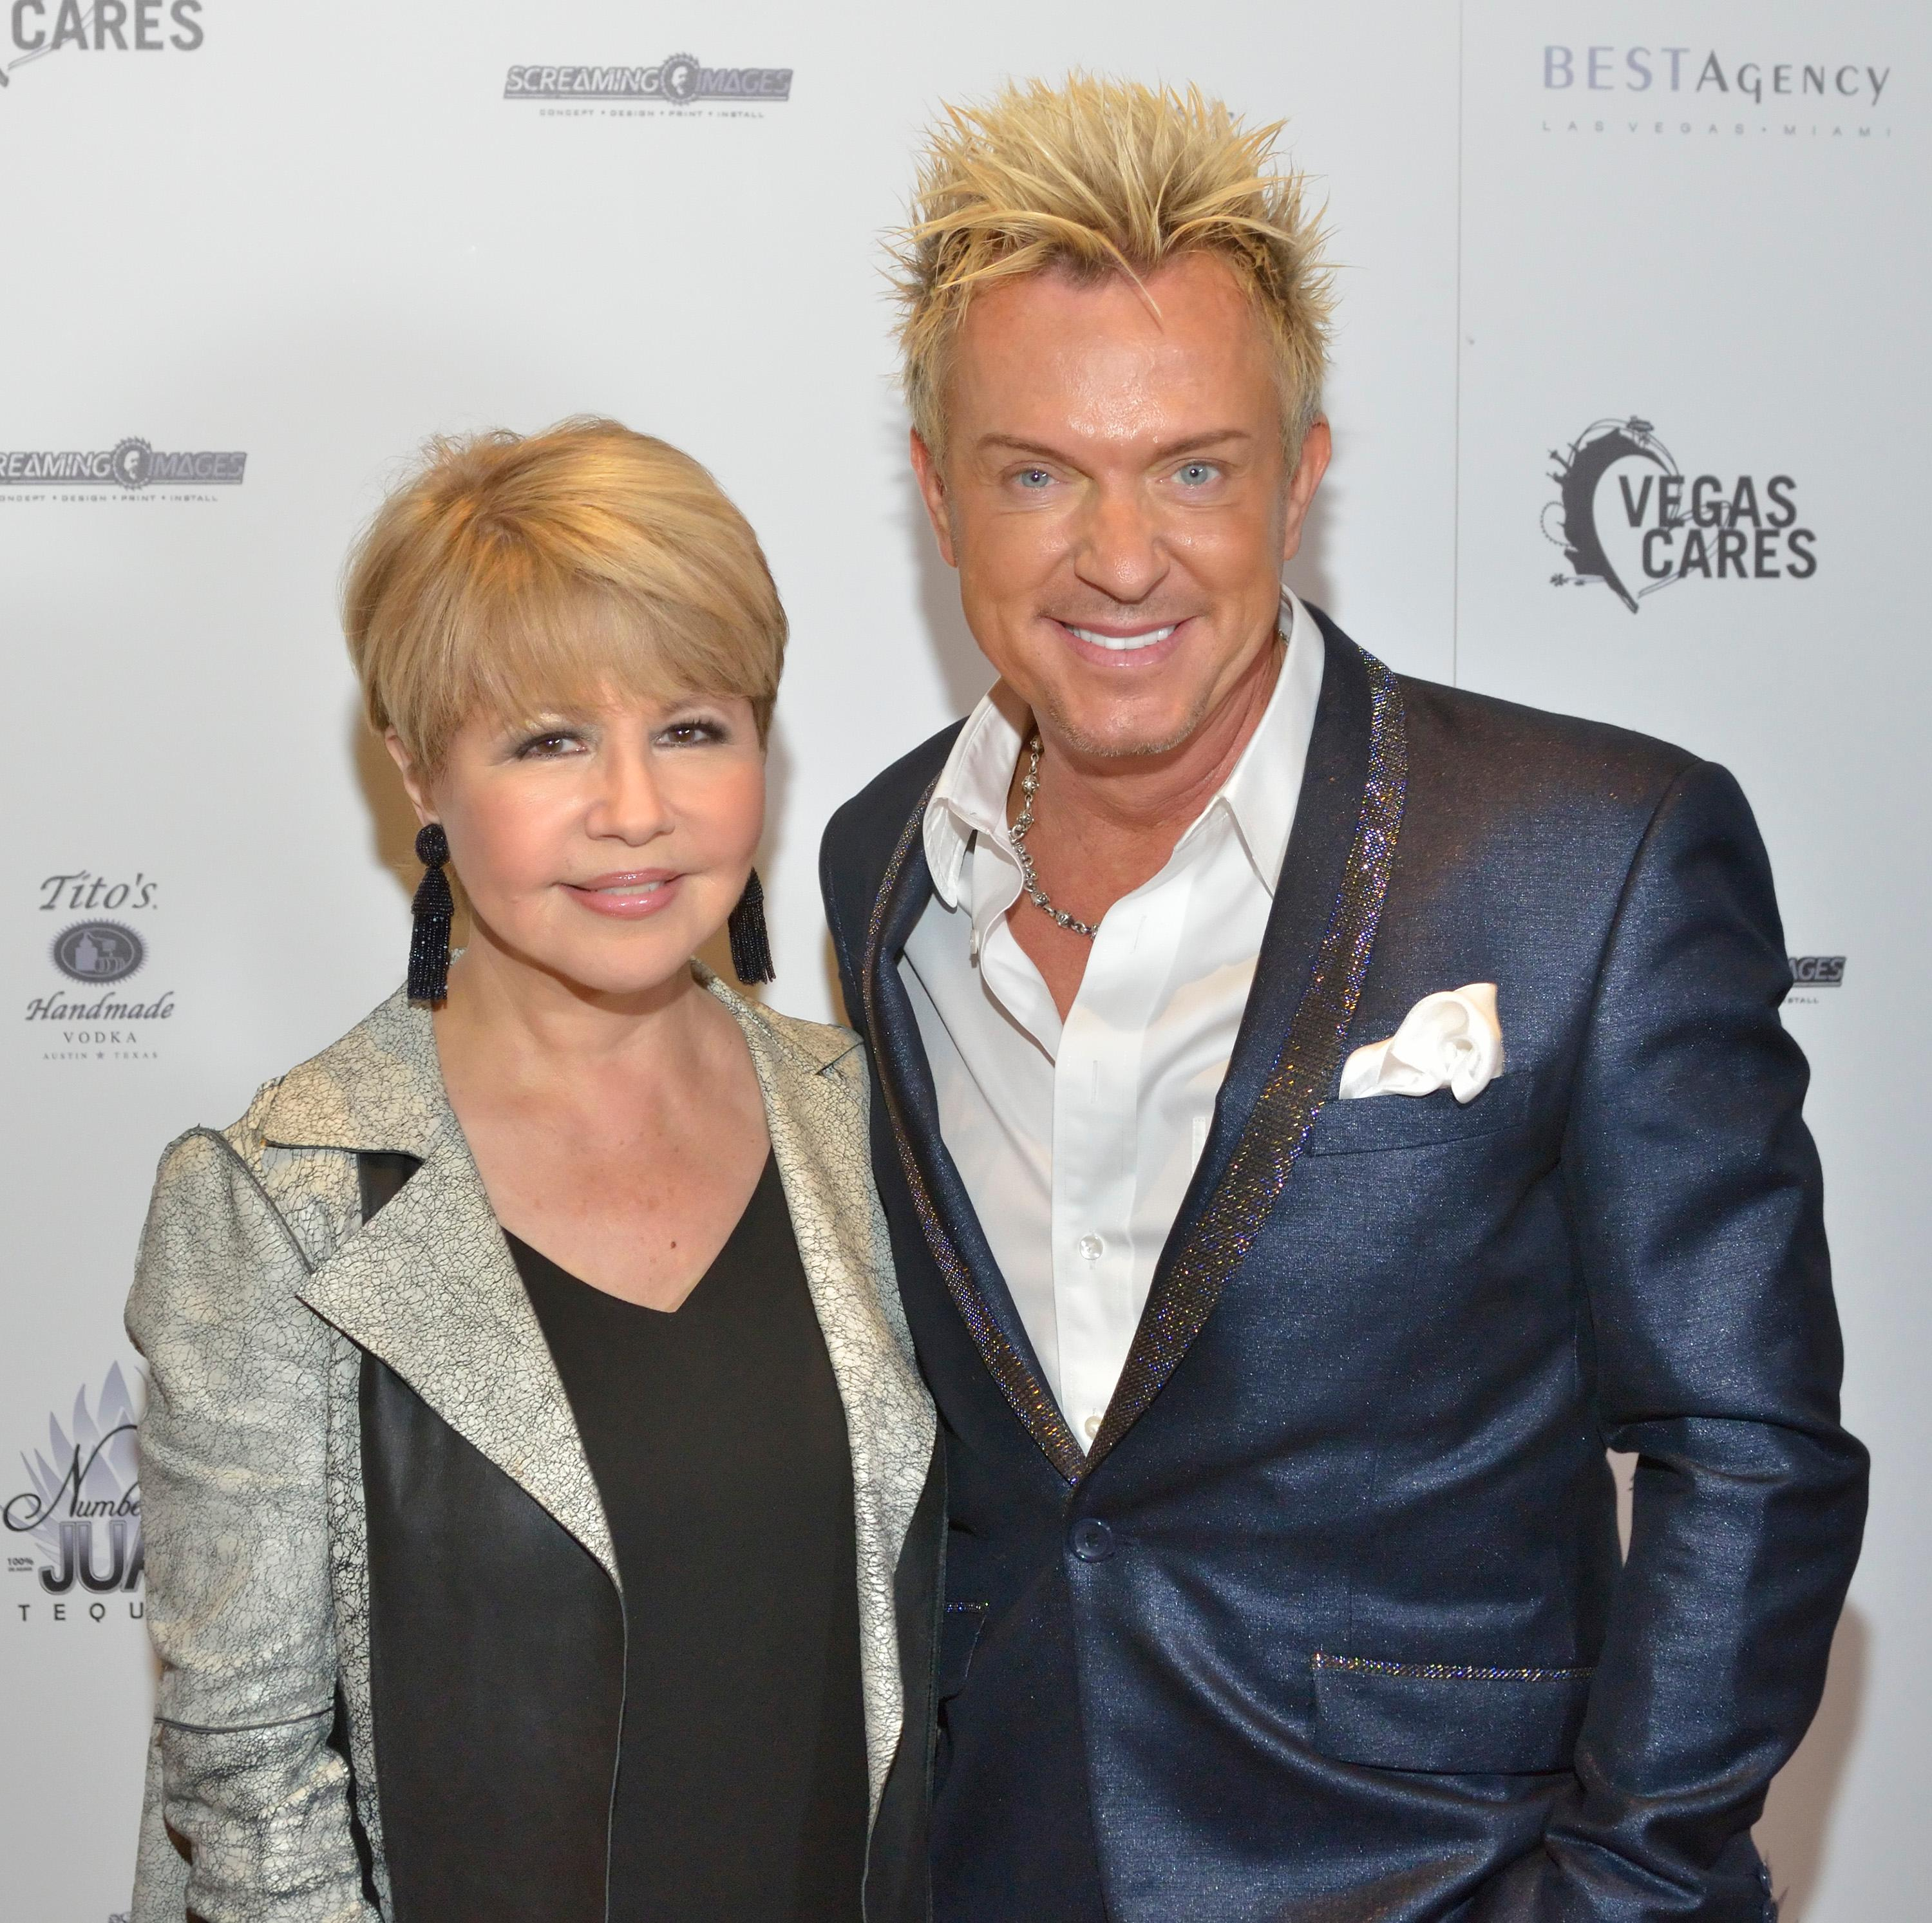 "Pia Zadora, left, and Chris Phillips of Zowie Bowie are shown at the ""Vegas Cares"" benefit concert at the Venetian Theatre in the Venetian hotel-casino at 3355 S. Las Vegas Blvd in Las Vegas on Sunday, Nov 5, 2017. The concert was sponsored by a group of Las Vegas entertainers, producers and business professionals to honor the victims and first responders from shooting at the Route 91 Harvest festival. (Photo/Las Vegas News Bureau/Bill Hughes)"